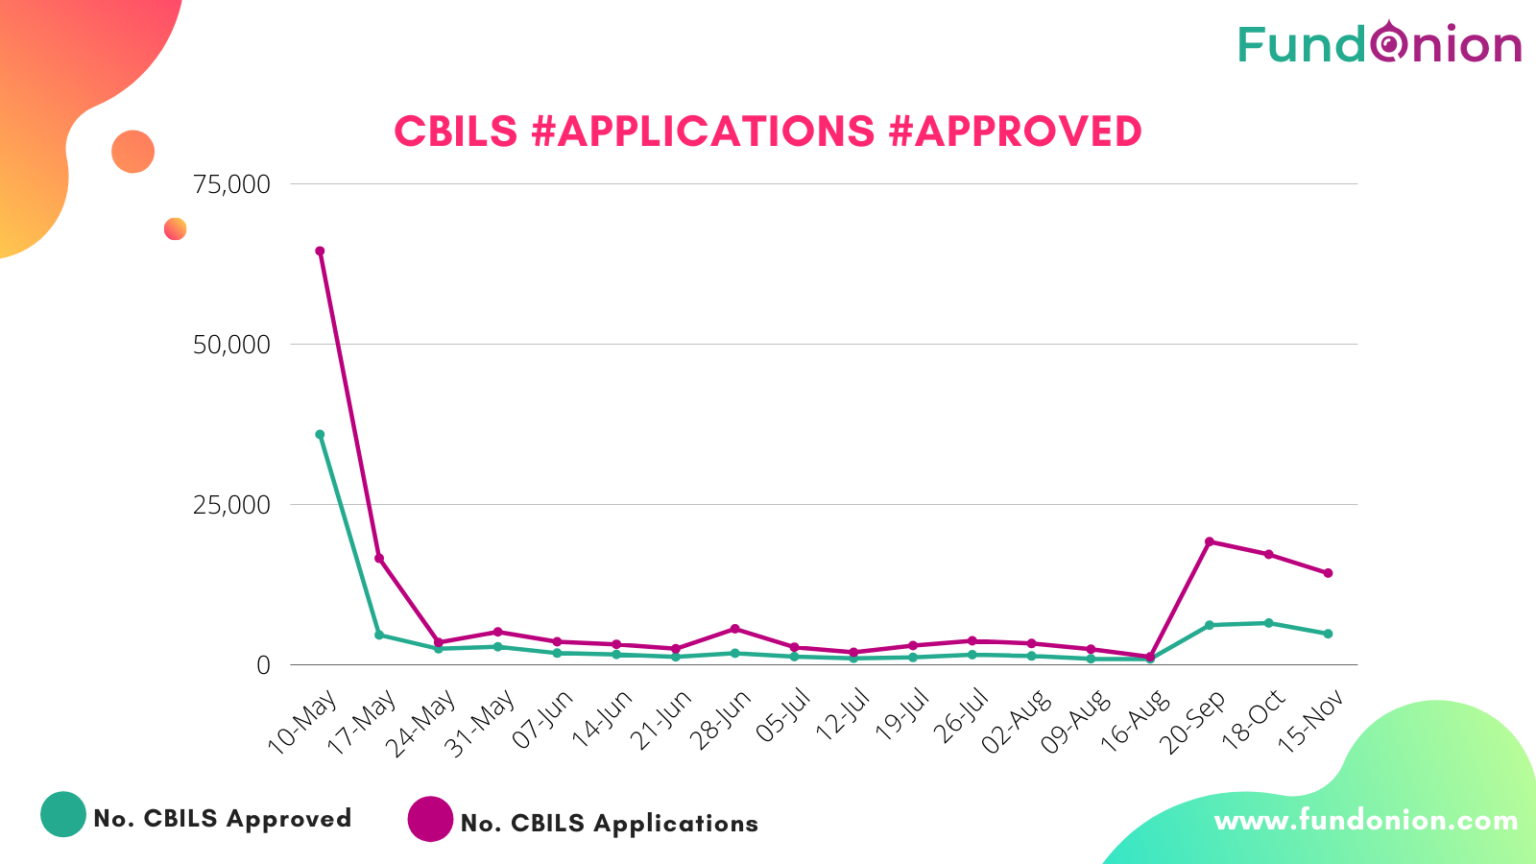 CBILS applications approval